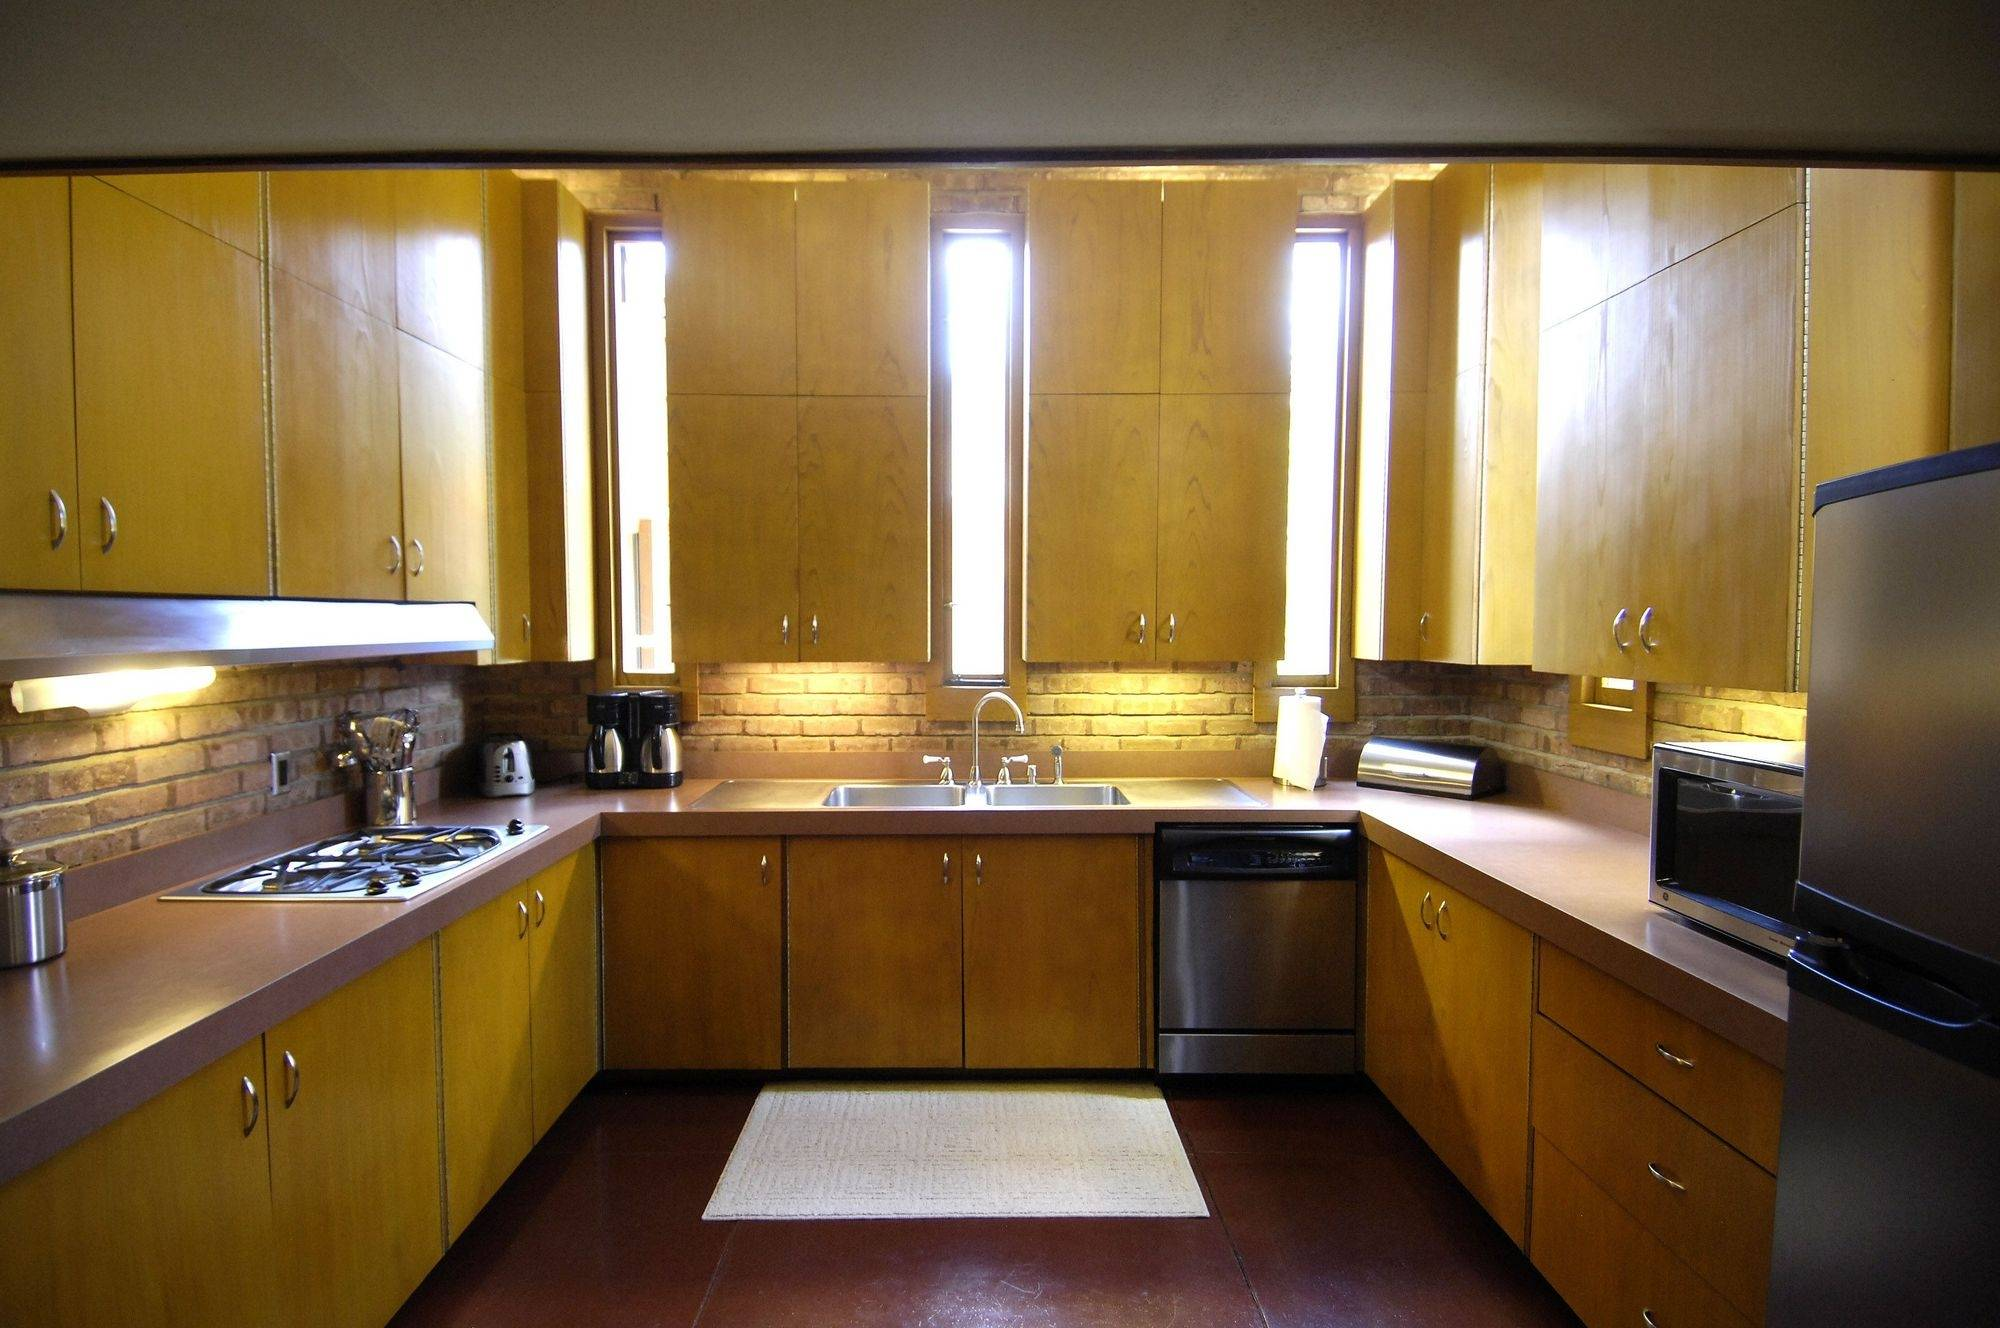 Elizabeth Muirhead Knew That Wright Was Notorious For Designing Small  Kitchens So She Requested And Got